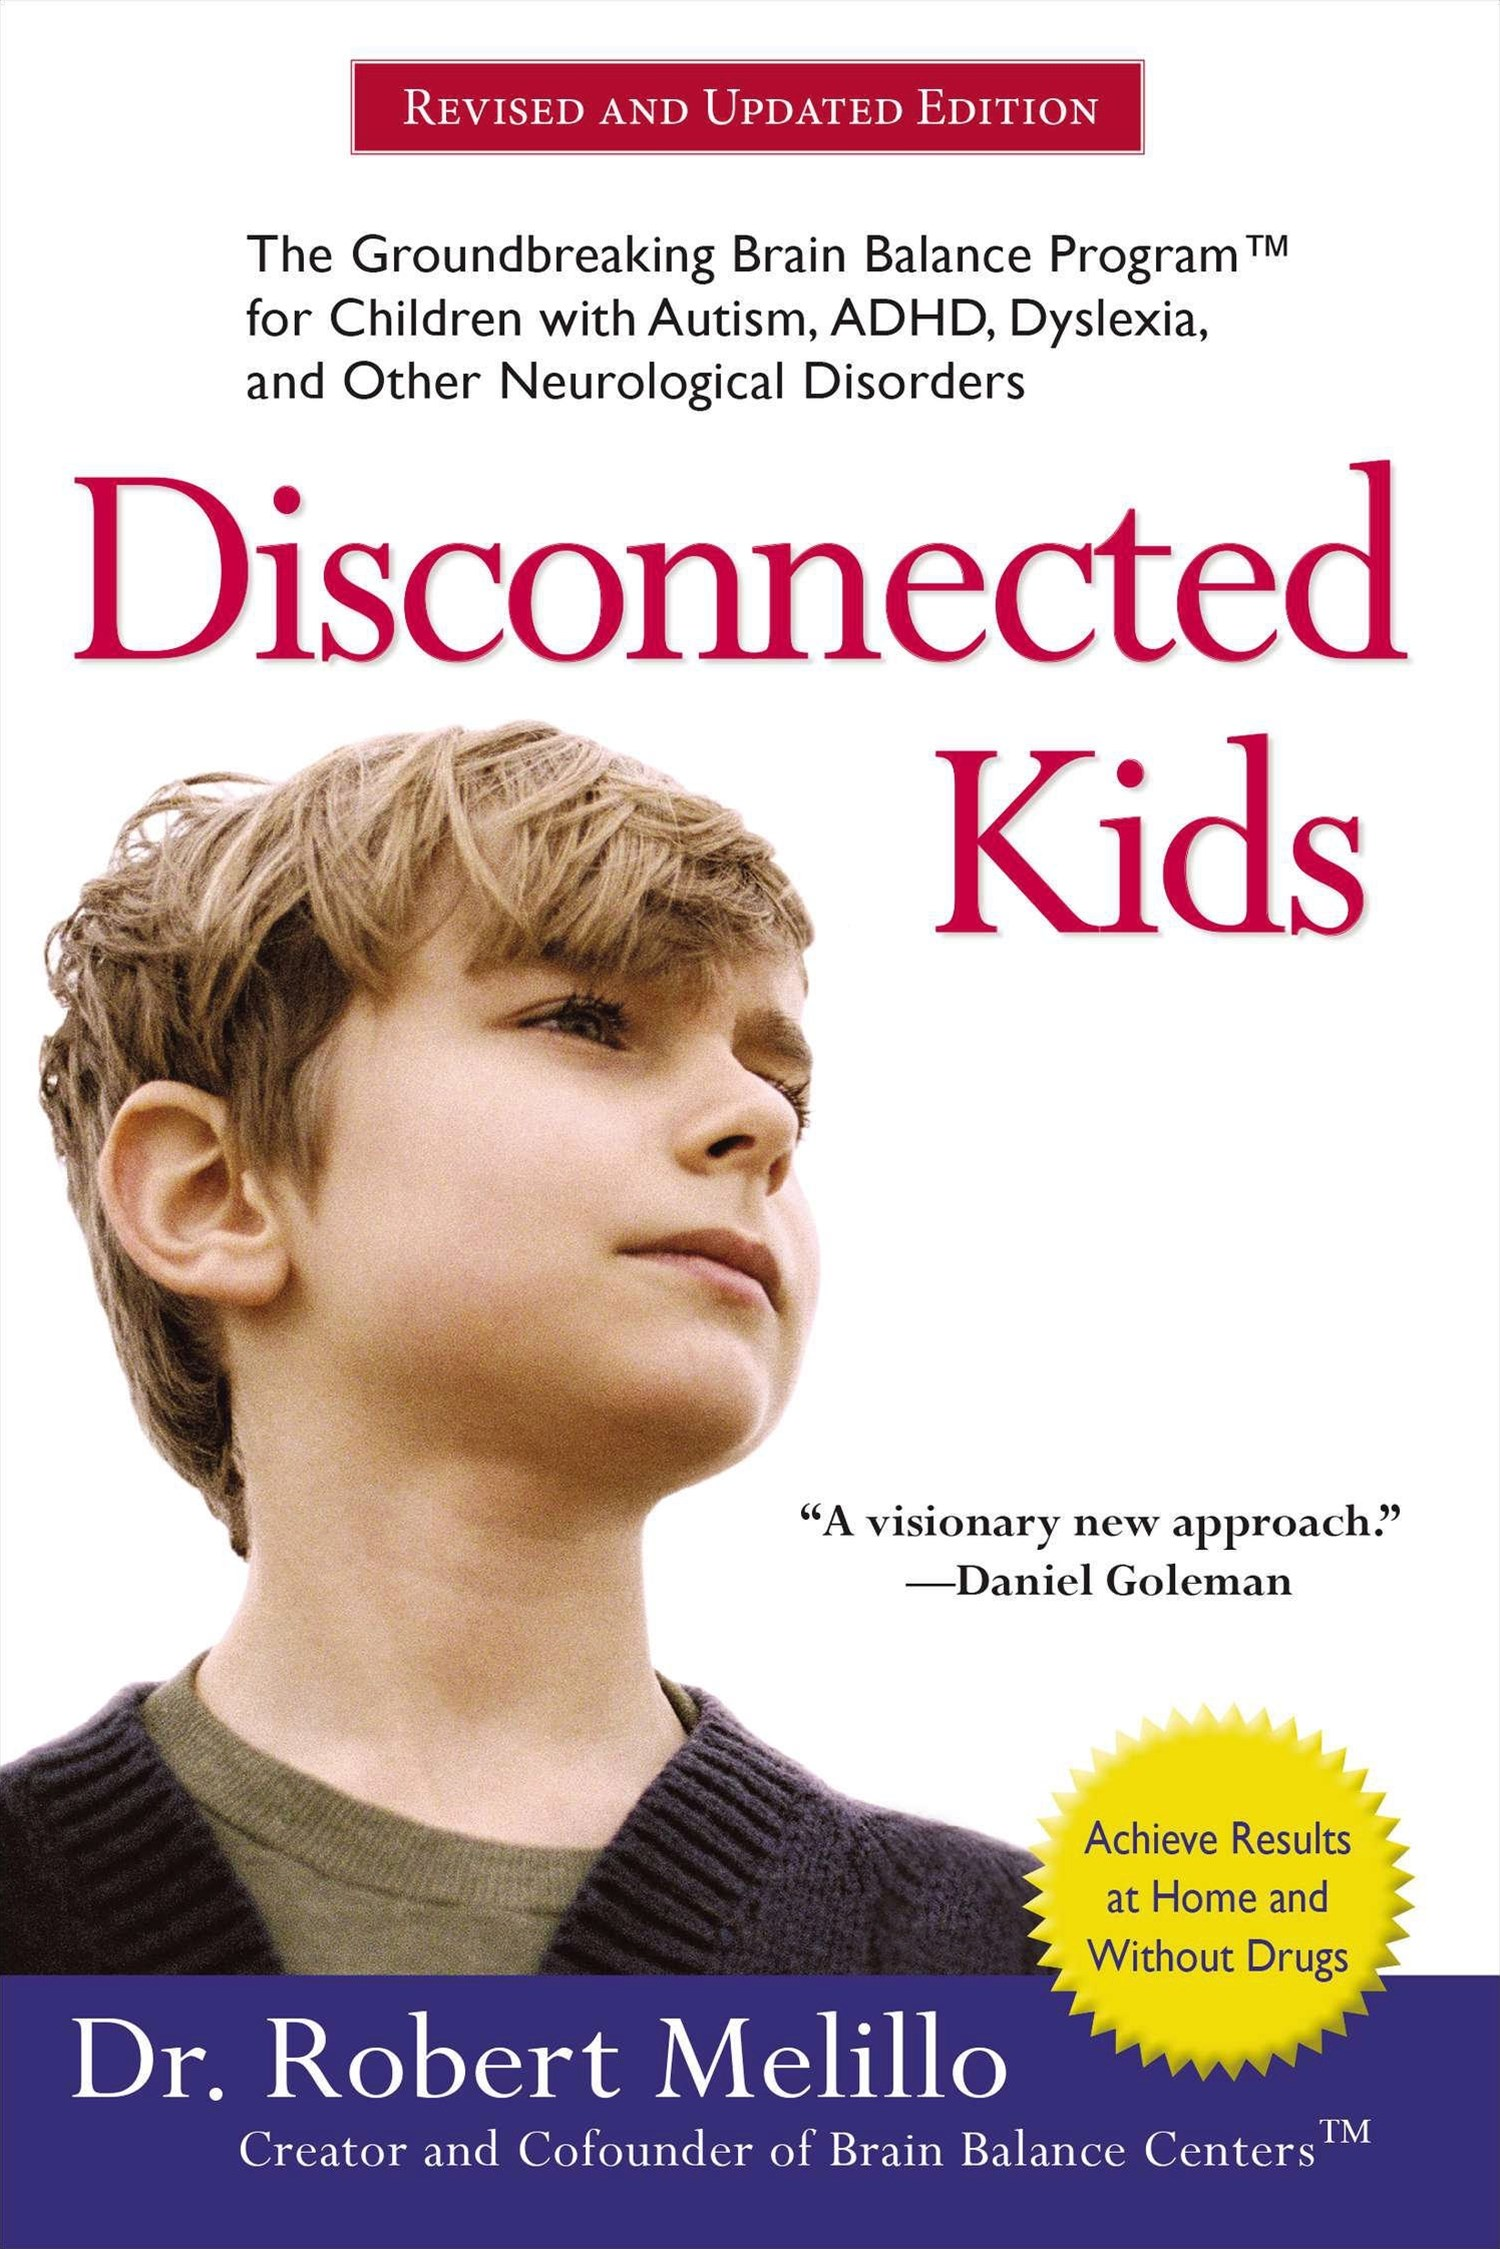 Disconnected Kids: The Groundbreaking Brain Balance Program for Childrenwith Autism, ADHD, Dyslexia, and Other Neurological Disorders